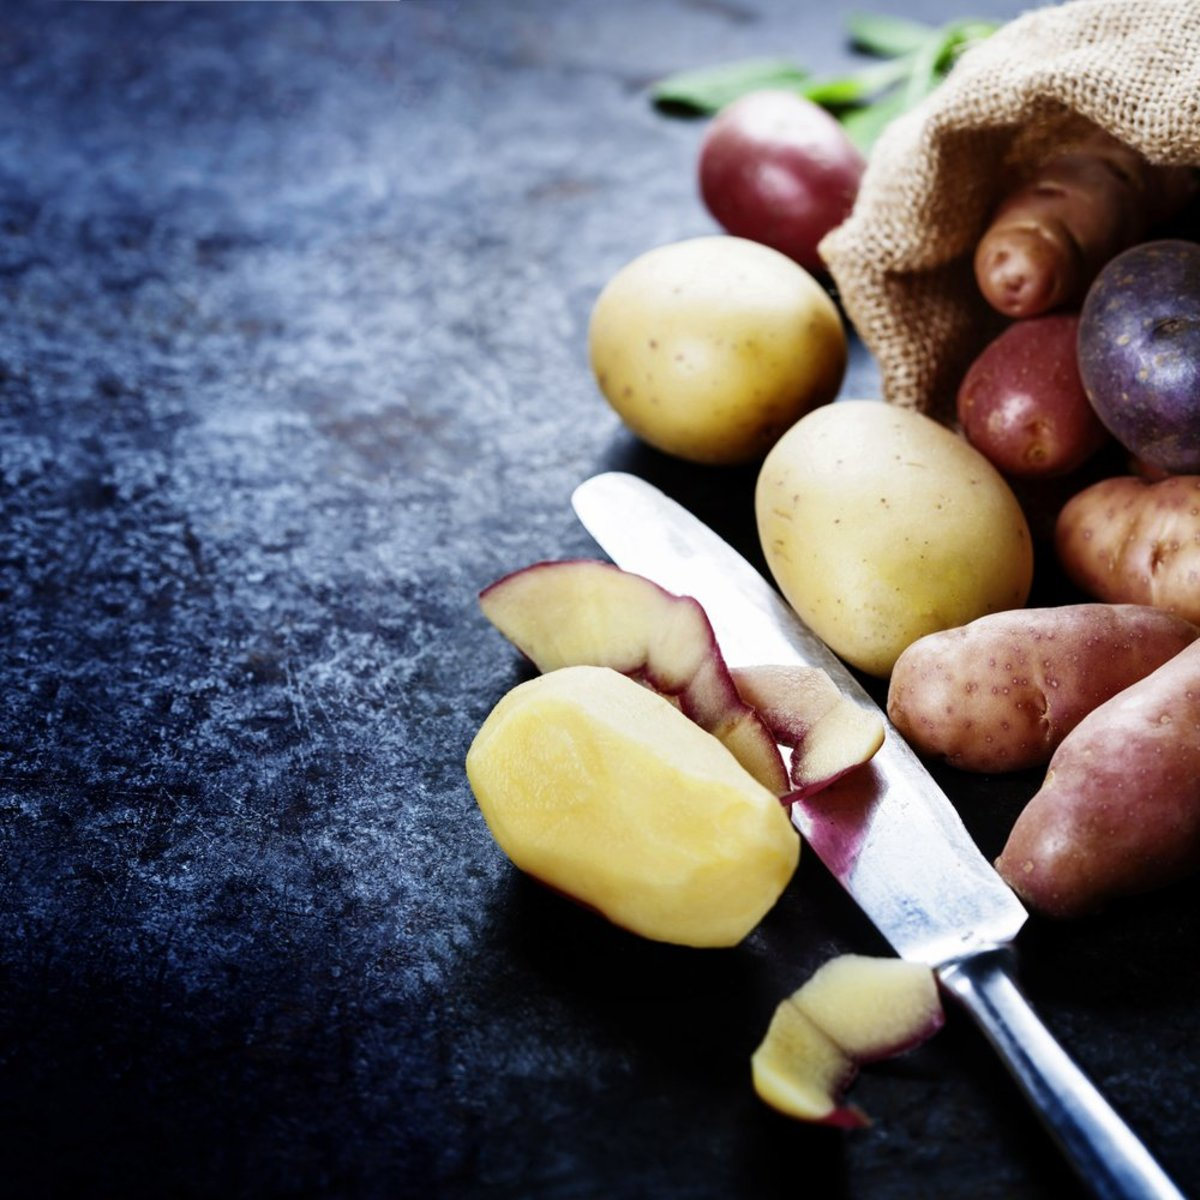 How To Grow Potatoes In 5 Simple Steps Organic Authority